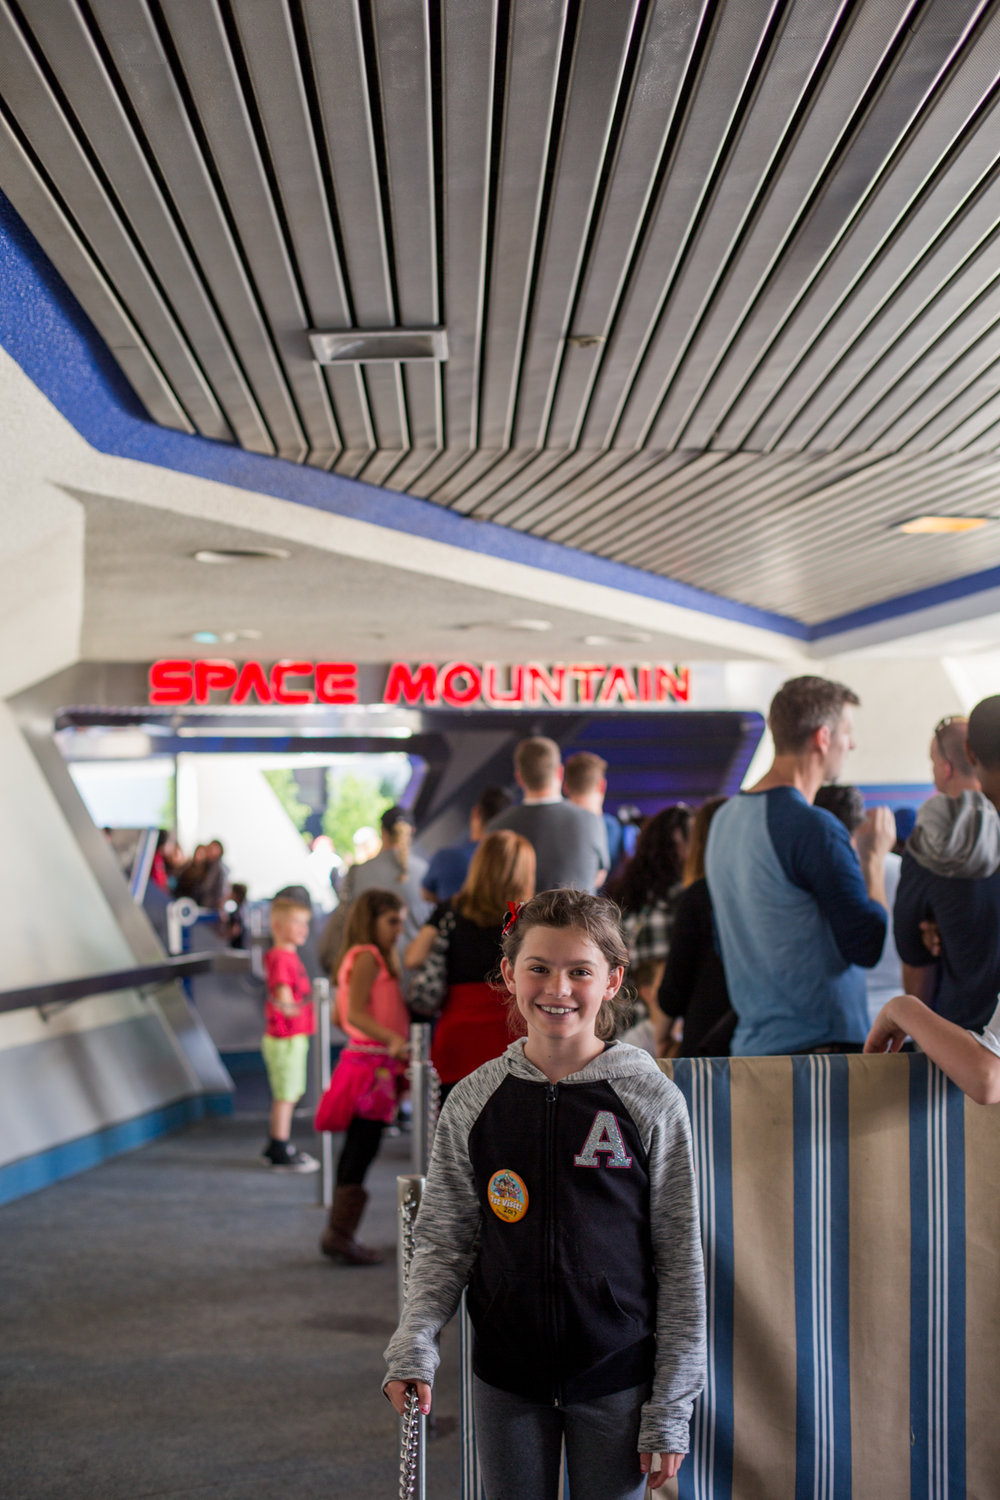 A mixture of anxiety and excitement as we waited in line for HyperSpace Mountain!